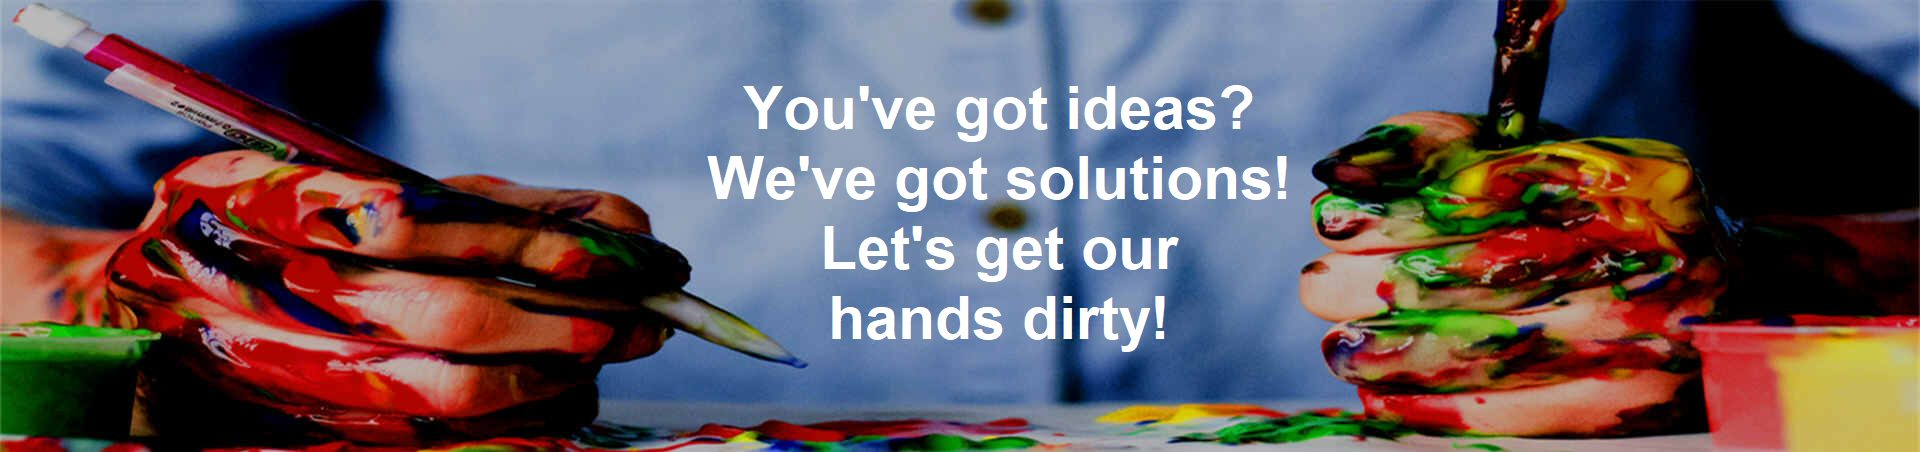 Got Ideas? We've Got Solutions!